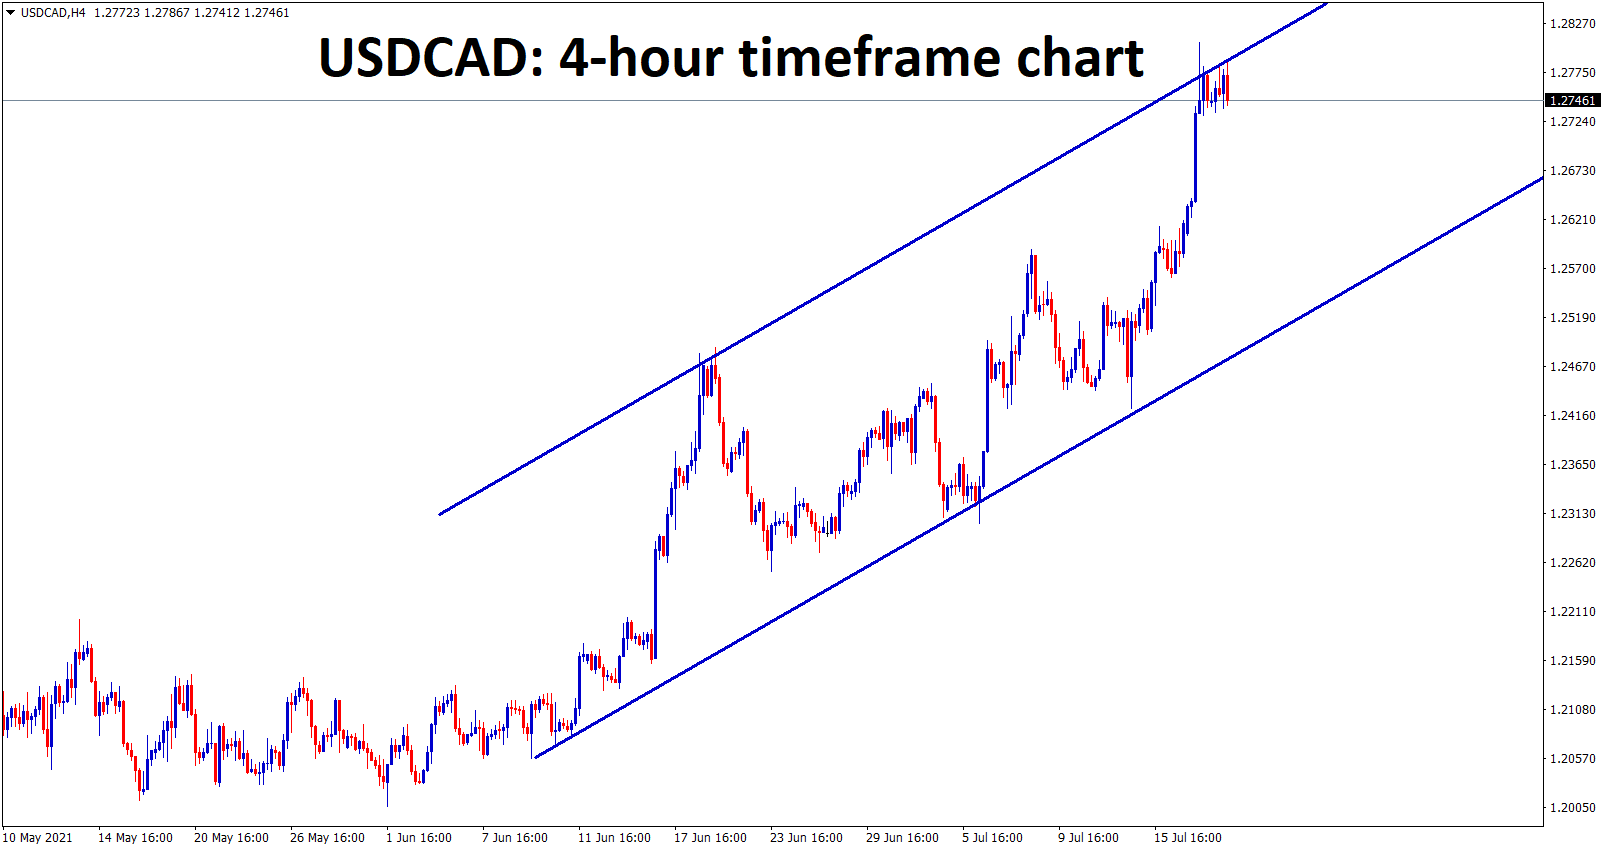 USDCAD flew up to the higher high zone of an Uptrend line